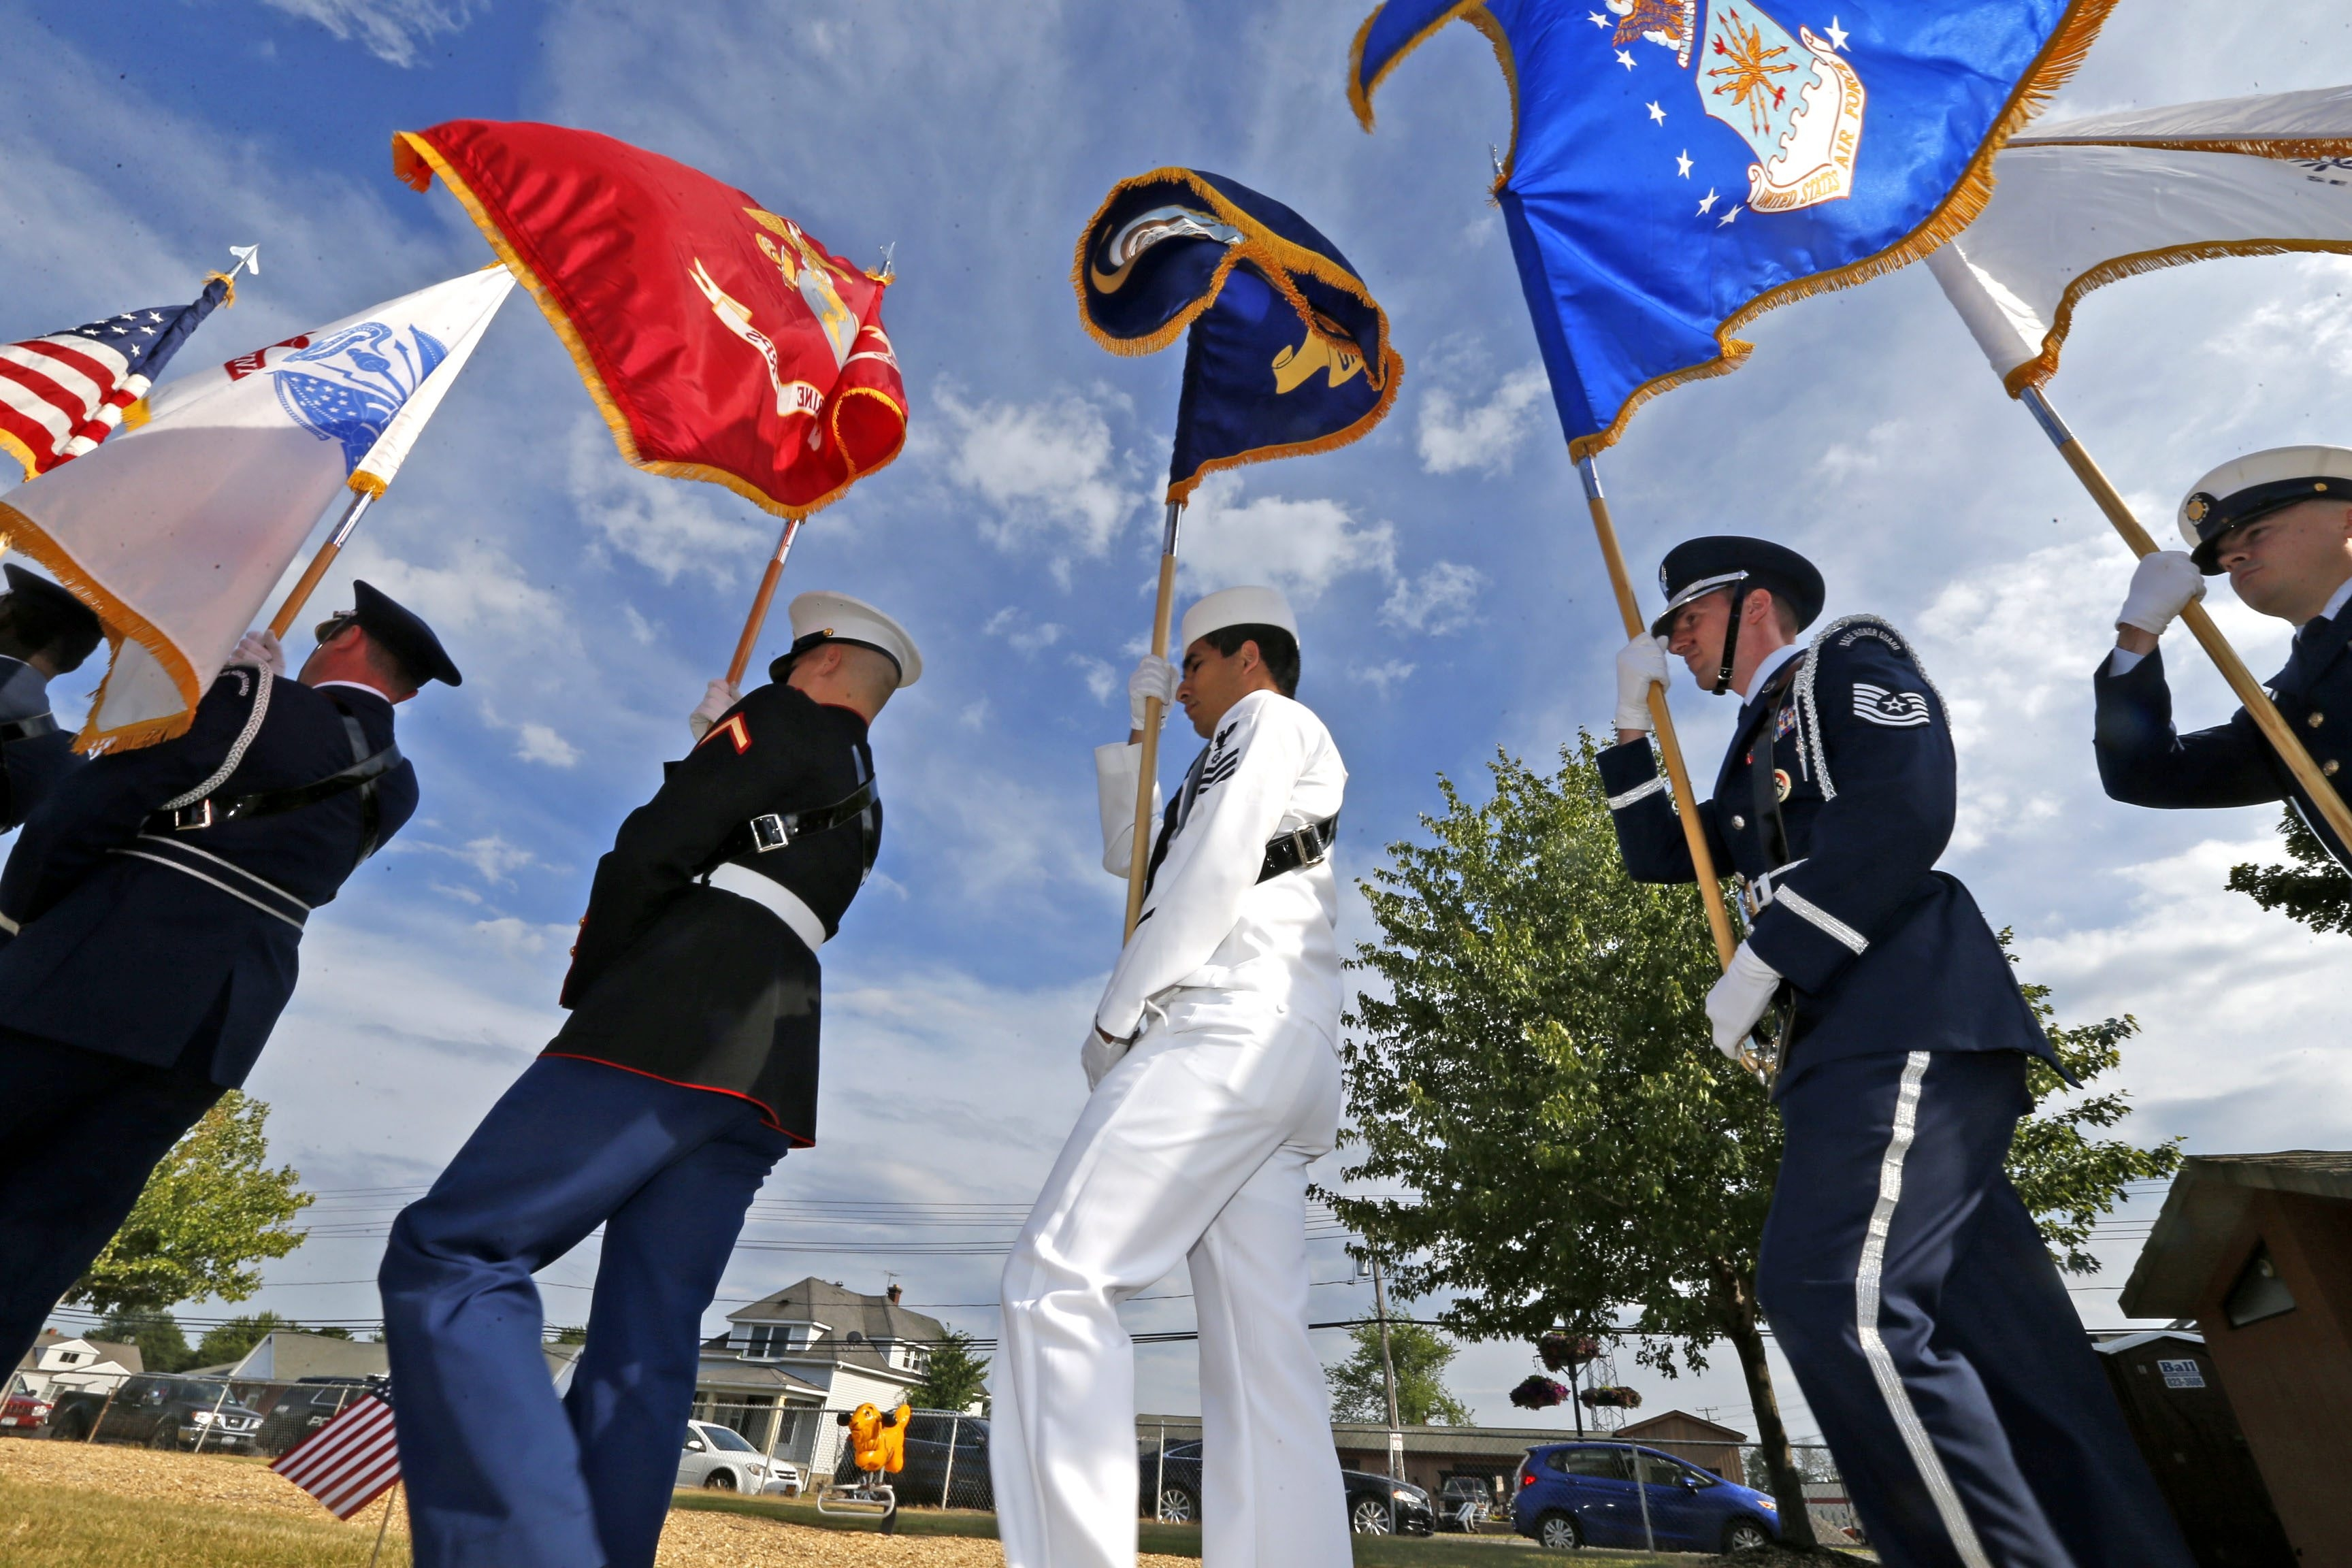 The honor guard representing the branches of the military bring in the colors. The Town of Tonawanda honored the resident veterans of the Town and the Village of Kenmore at a special ceremony at Kenney Field.